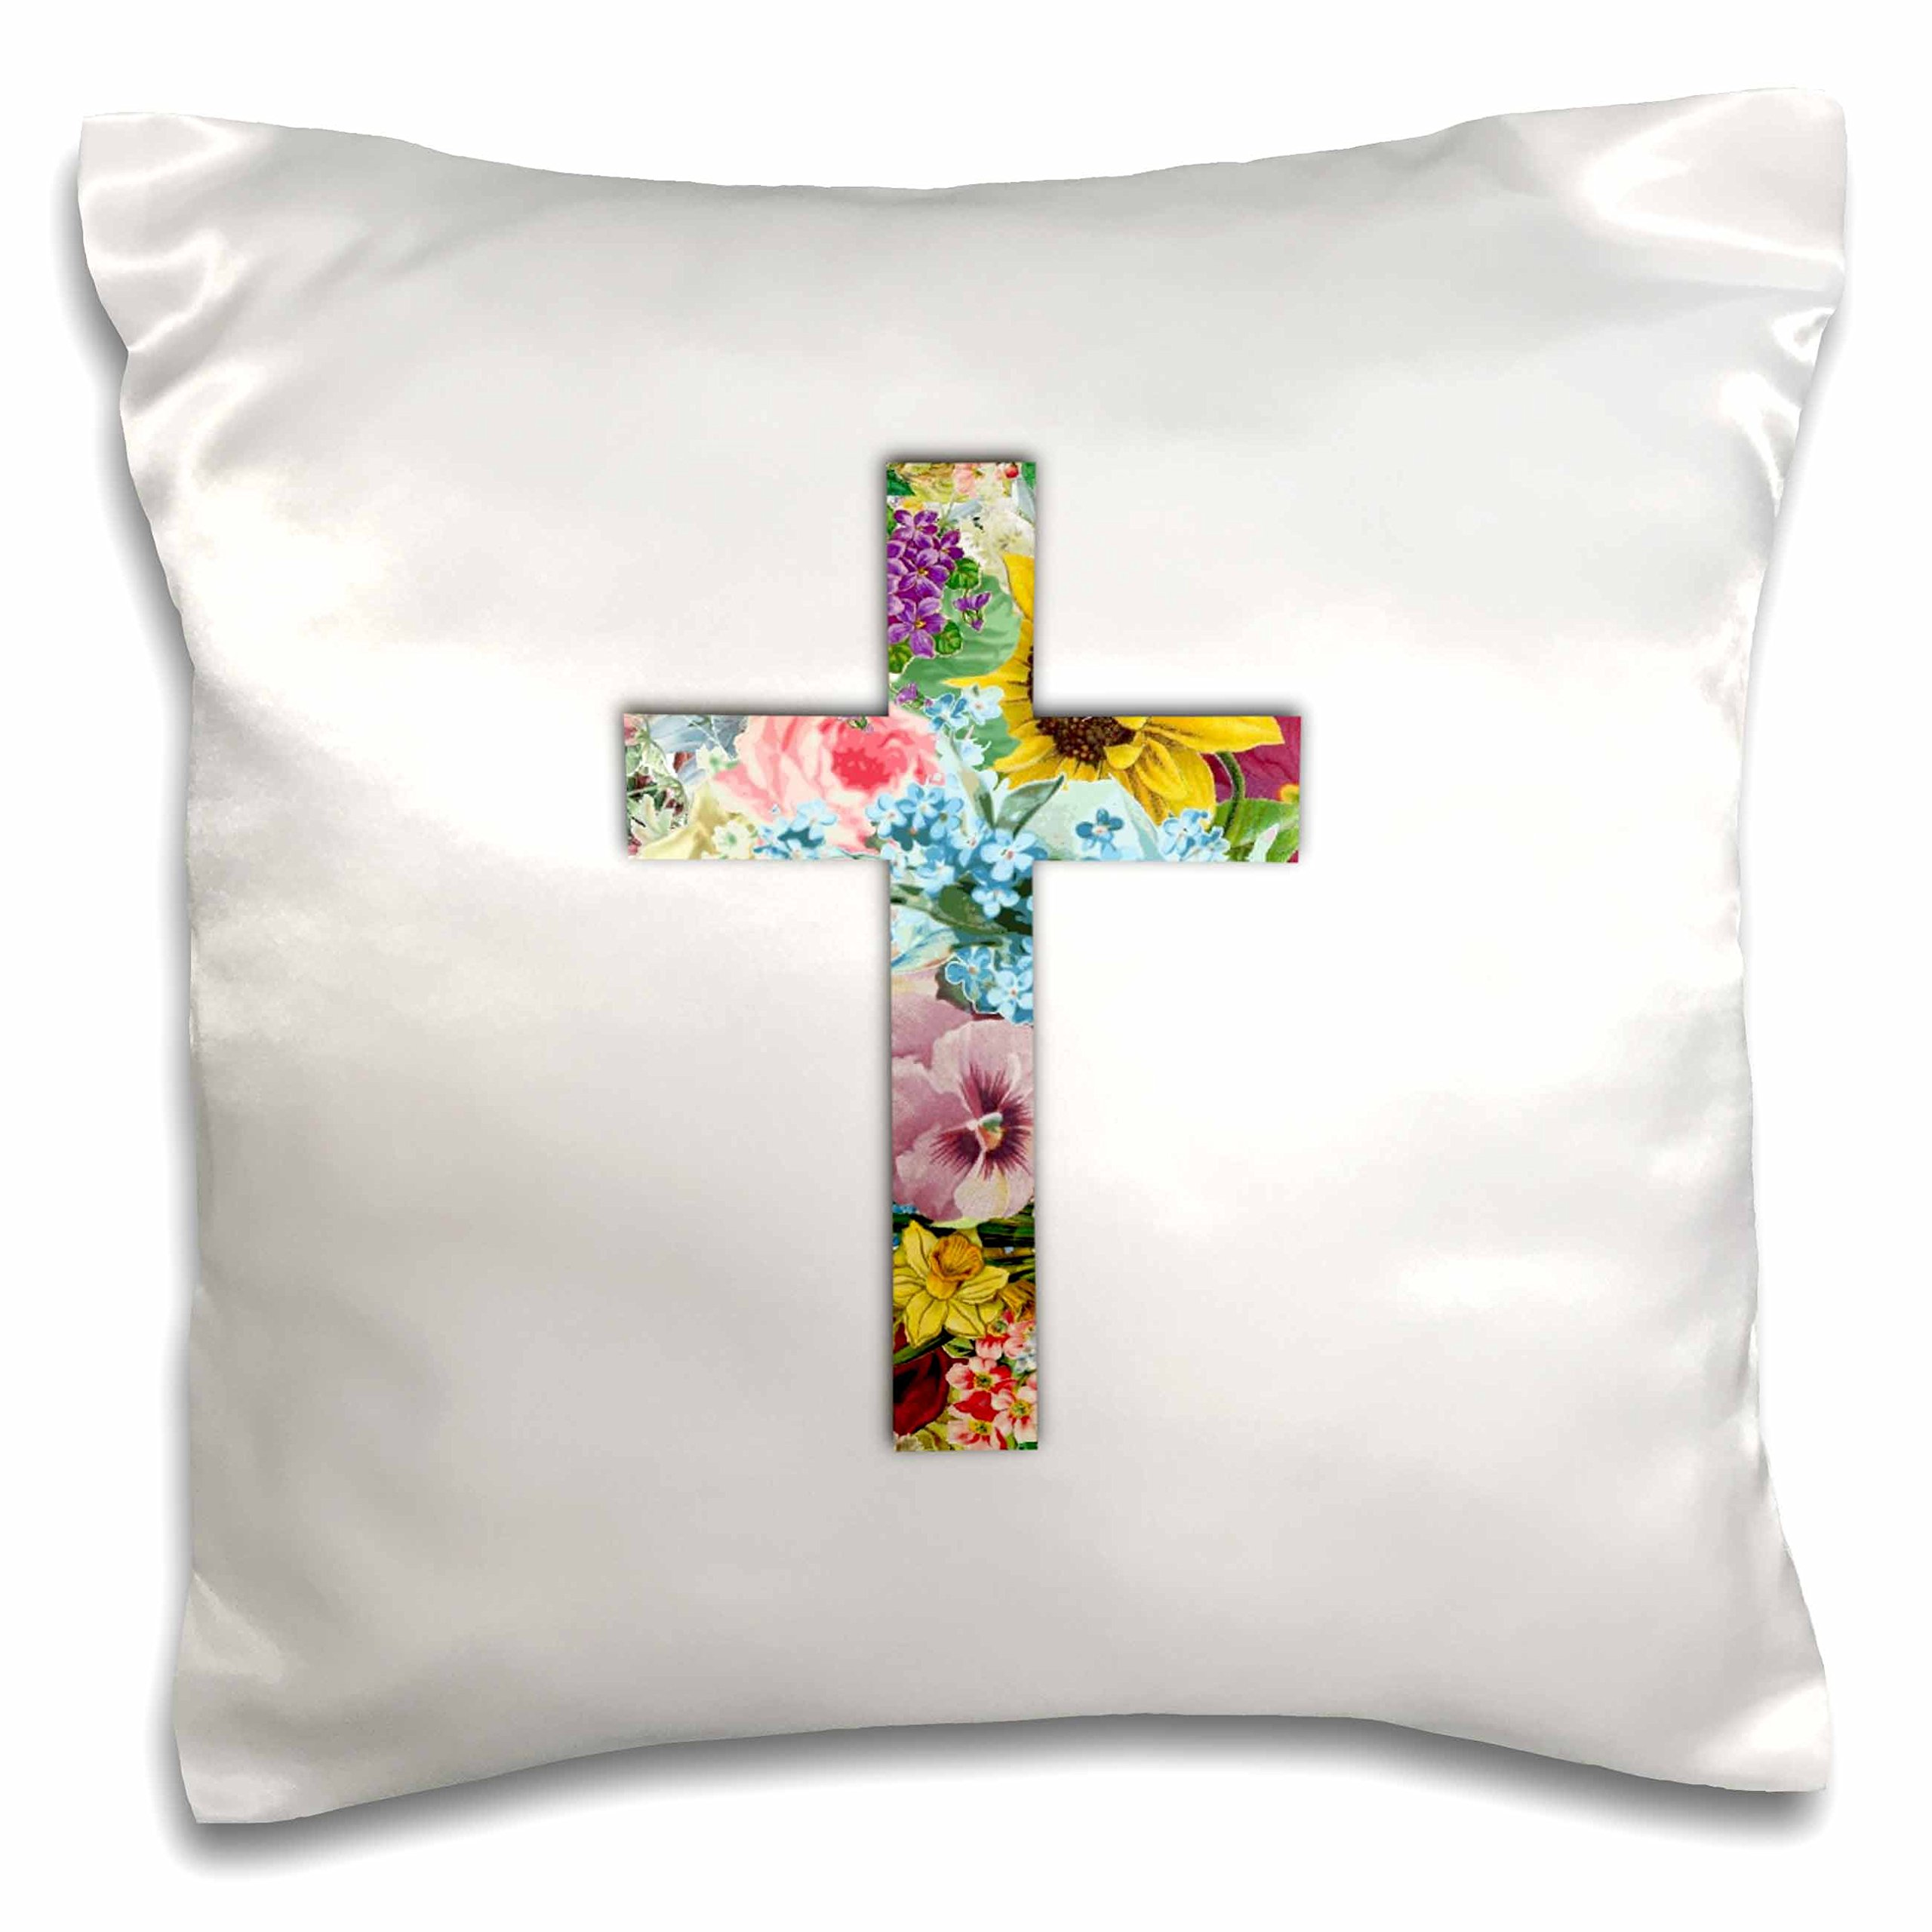 3D Rose Floral Christian Cross Colorful Girly Flower Pattern Religious Symbol Pillow Case, 16'' x 16'' by 3dRose